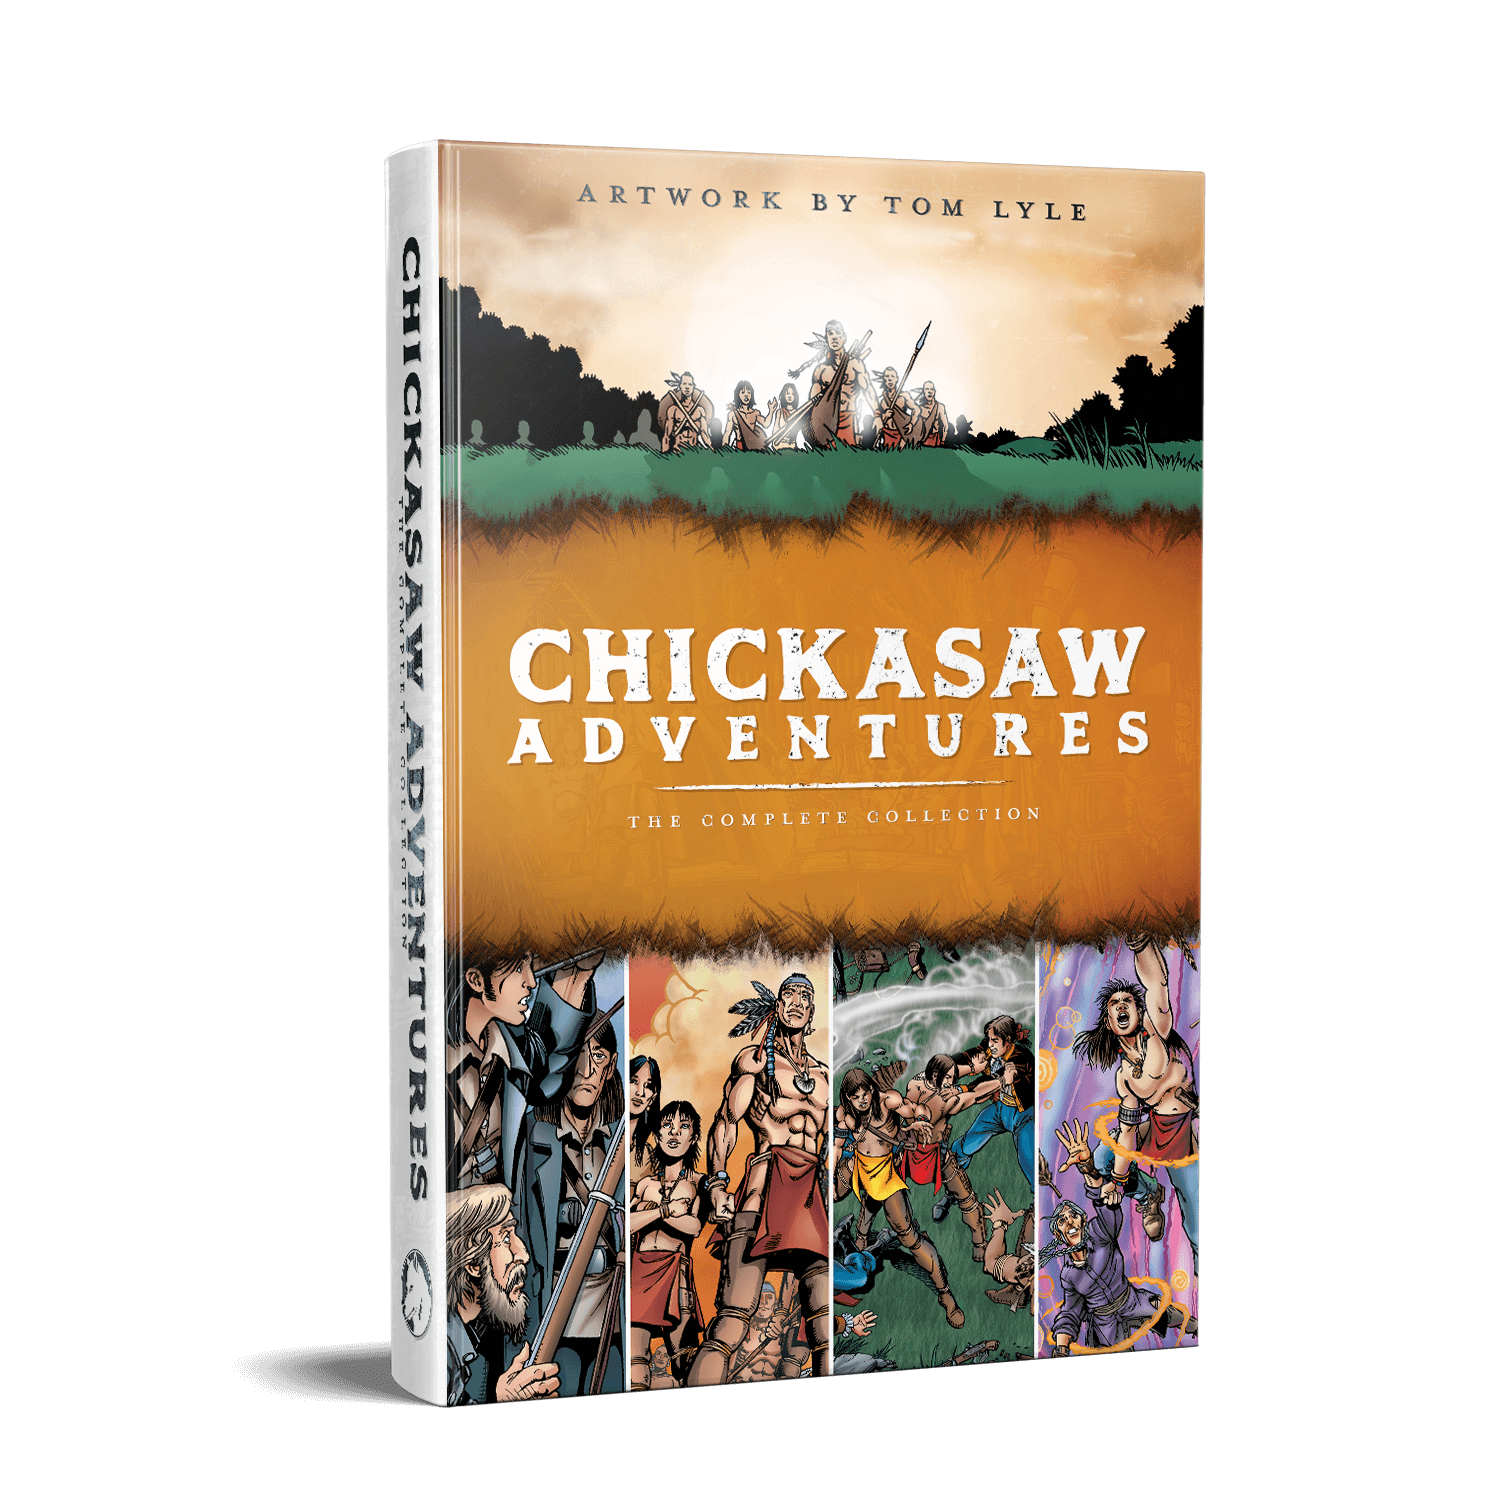 Chickasaw Adventures The Complete Collection